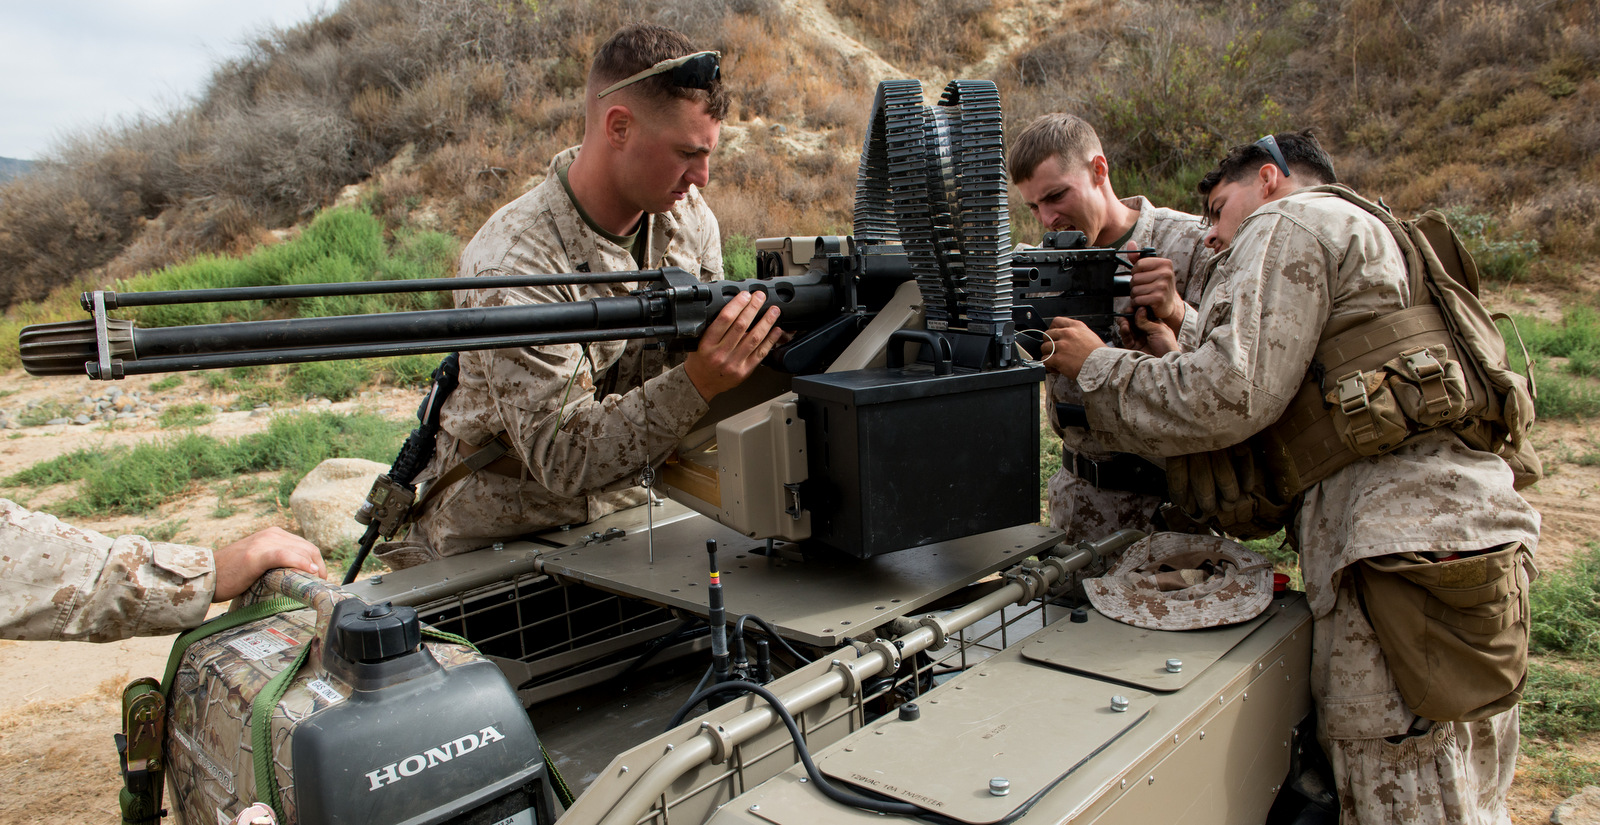 U.S. Marines adjust a mounted gun on the Multi Utility Tactical Transport (MUTT) for testing at Marine Corps Base Camp Pendleton, Calif., July 8, 2016. (U.S. Marine Corps photo)